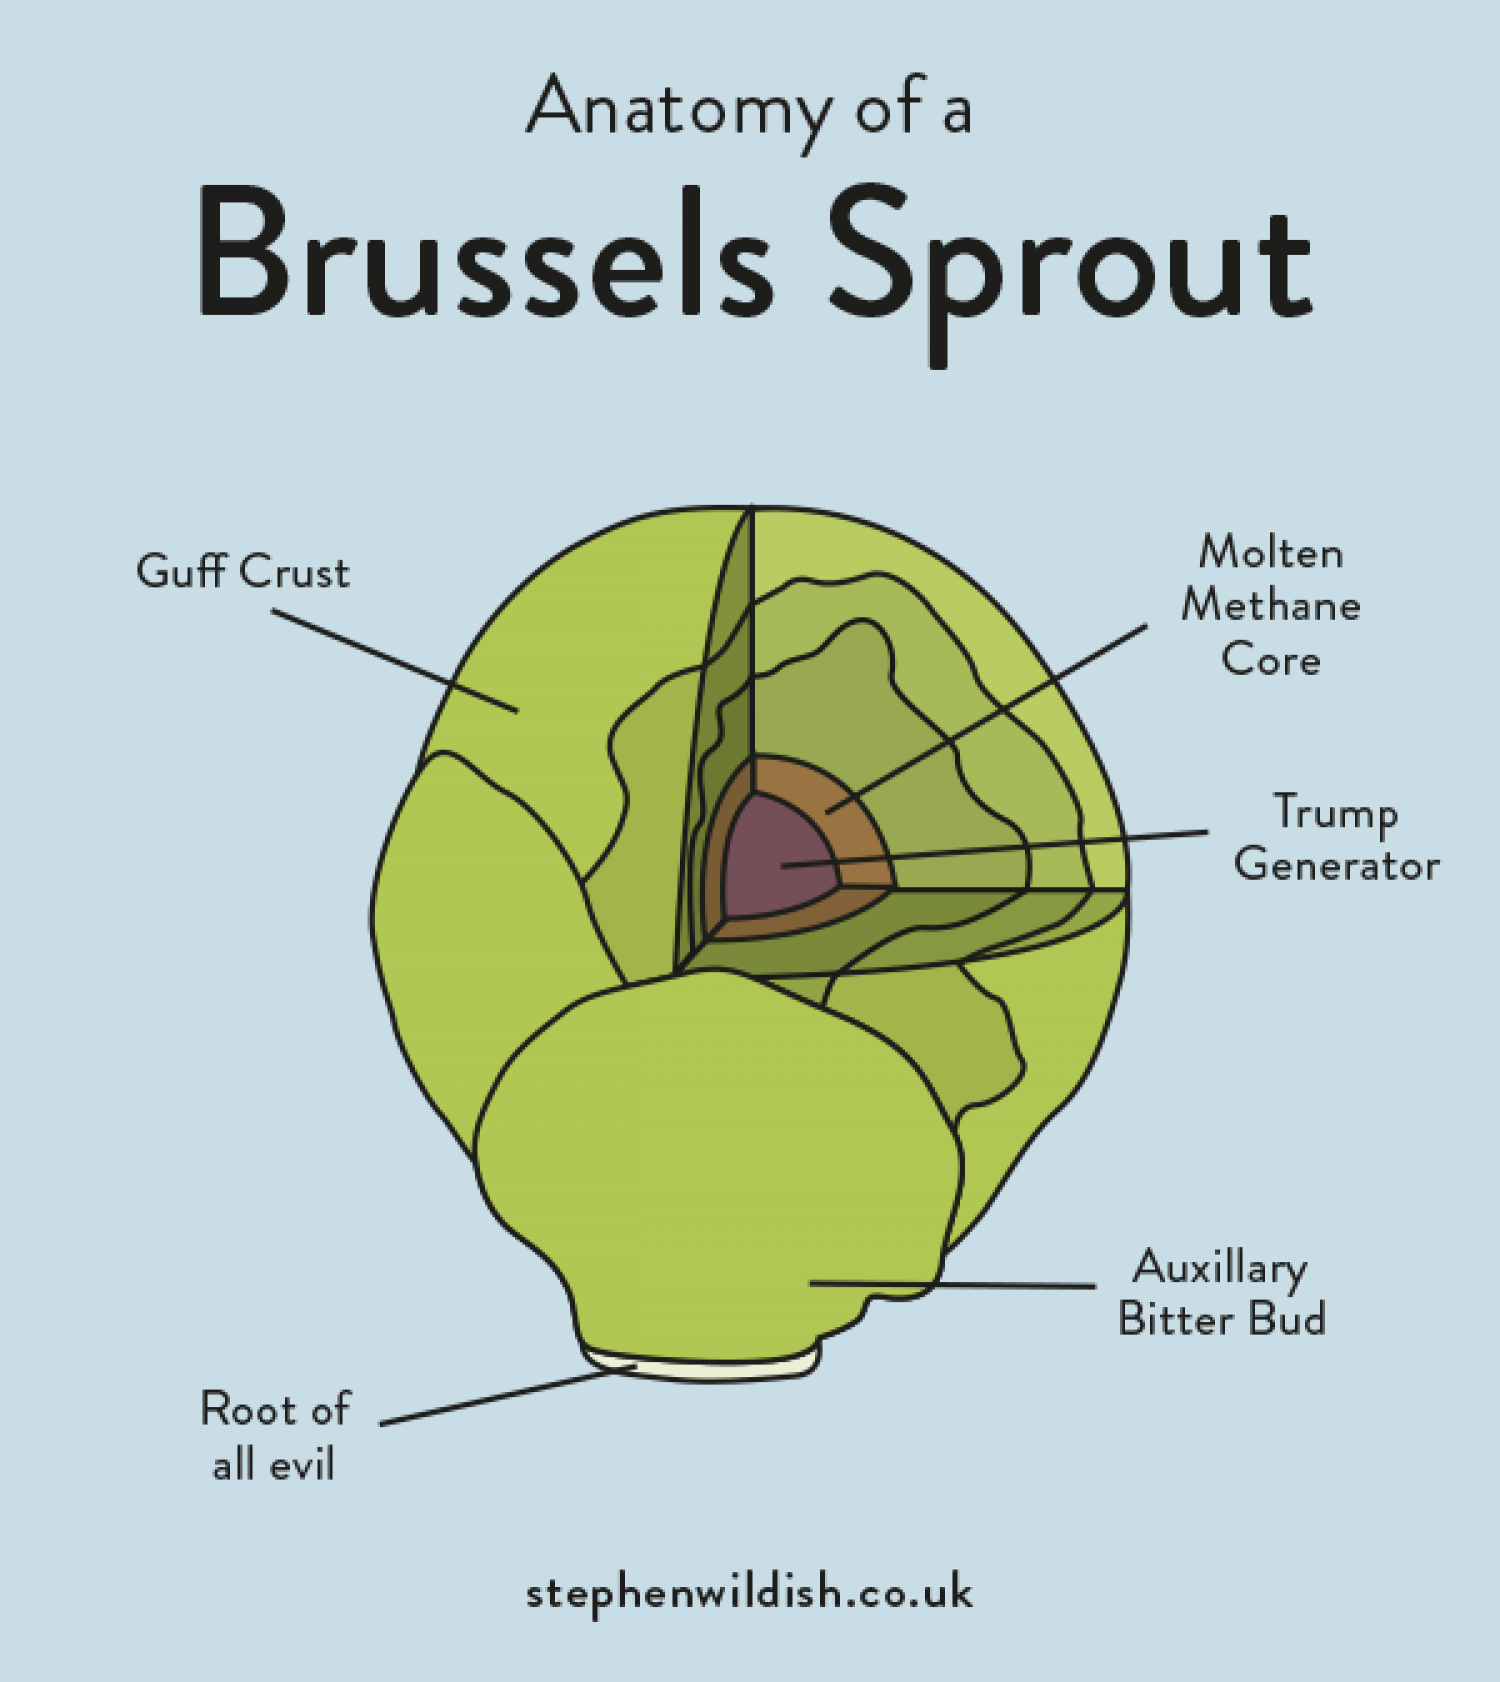 Anatomy of a Brussels Sprout | Visual.ly